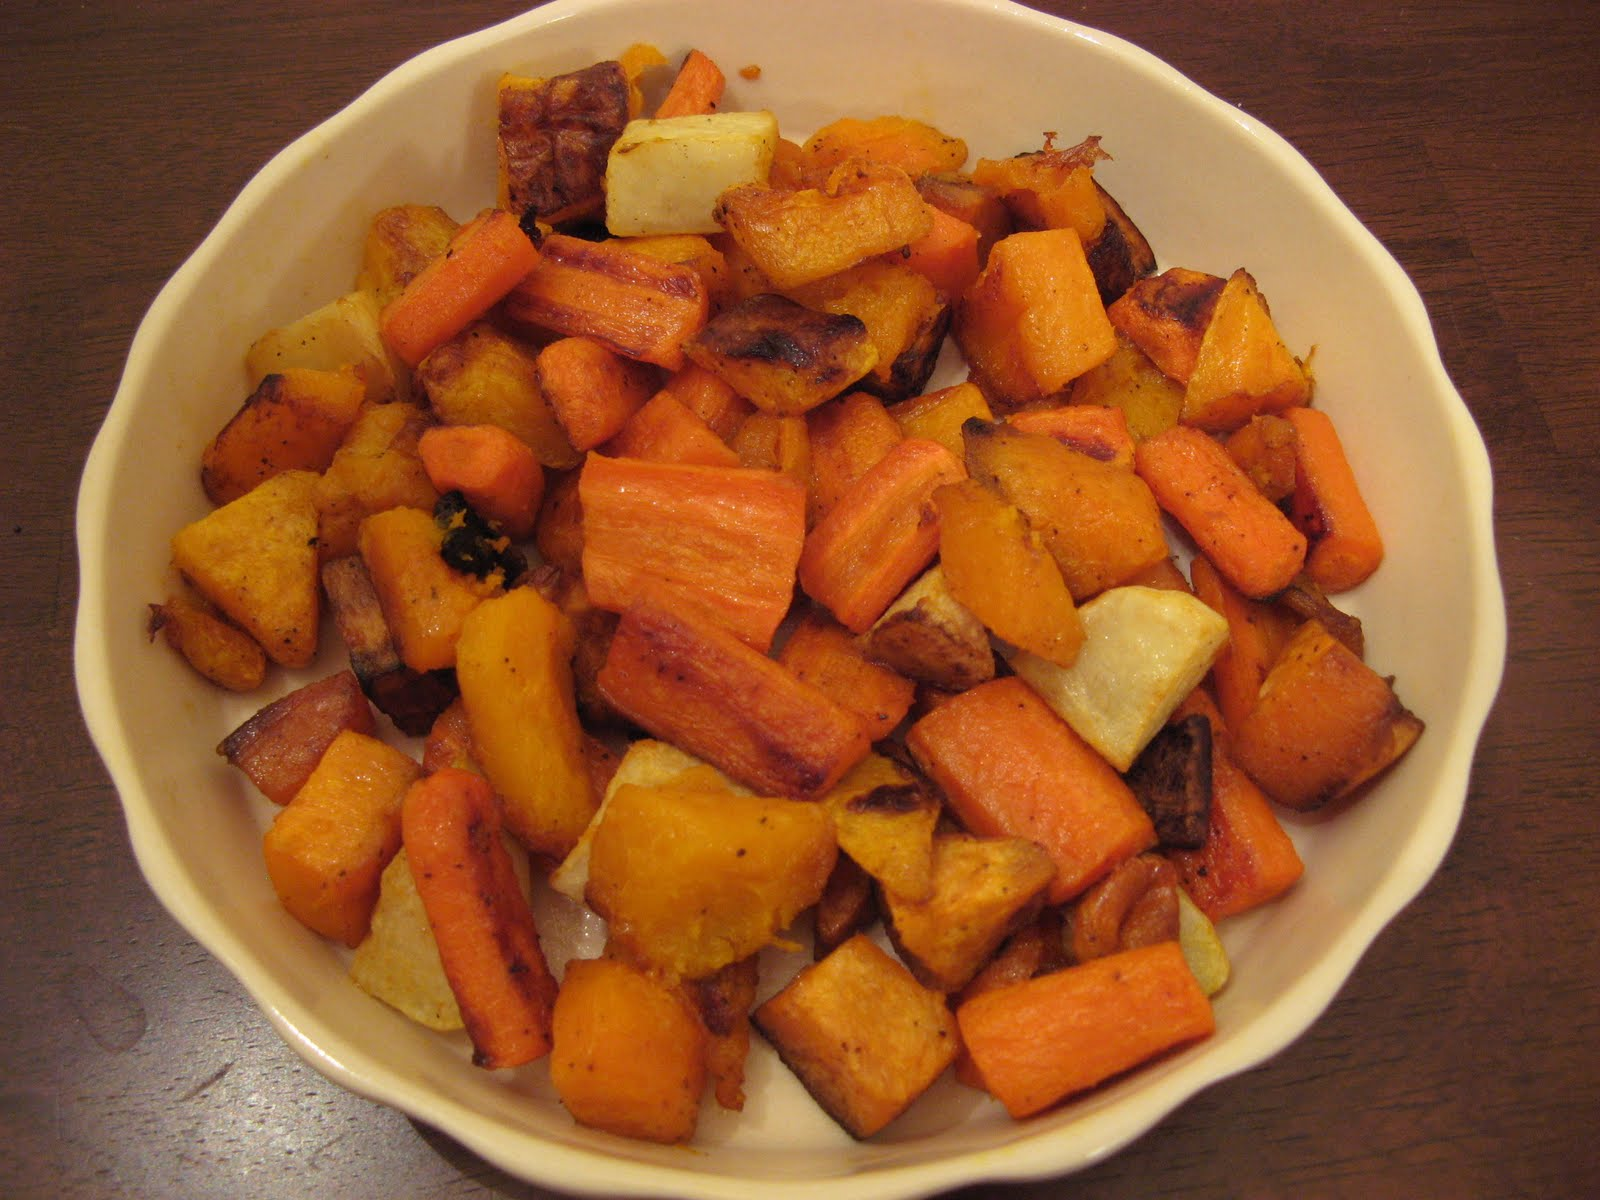 The Well-Fed Newlyweds: Roasted Root Vegetables and Winter Squash